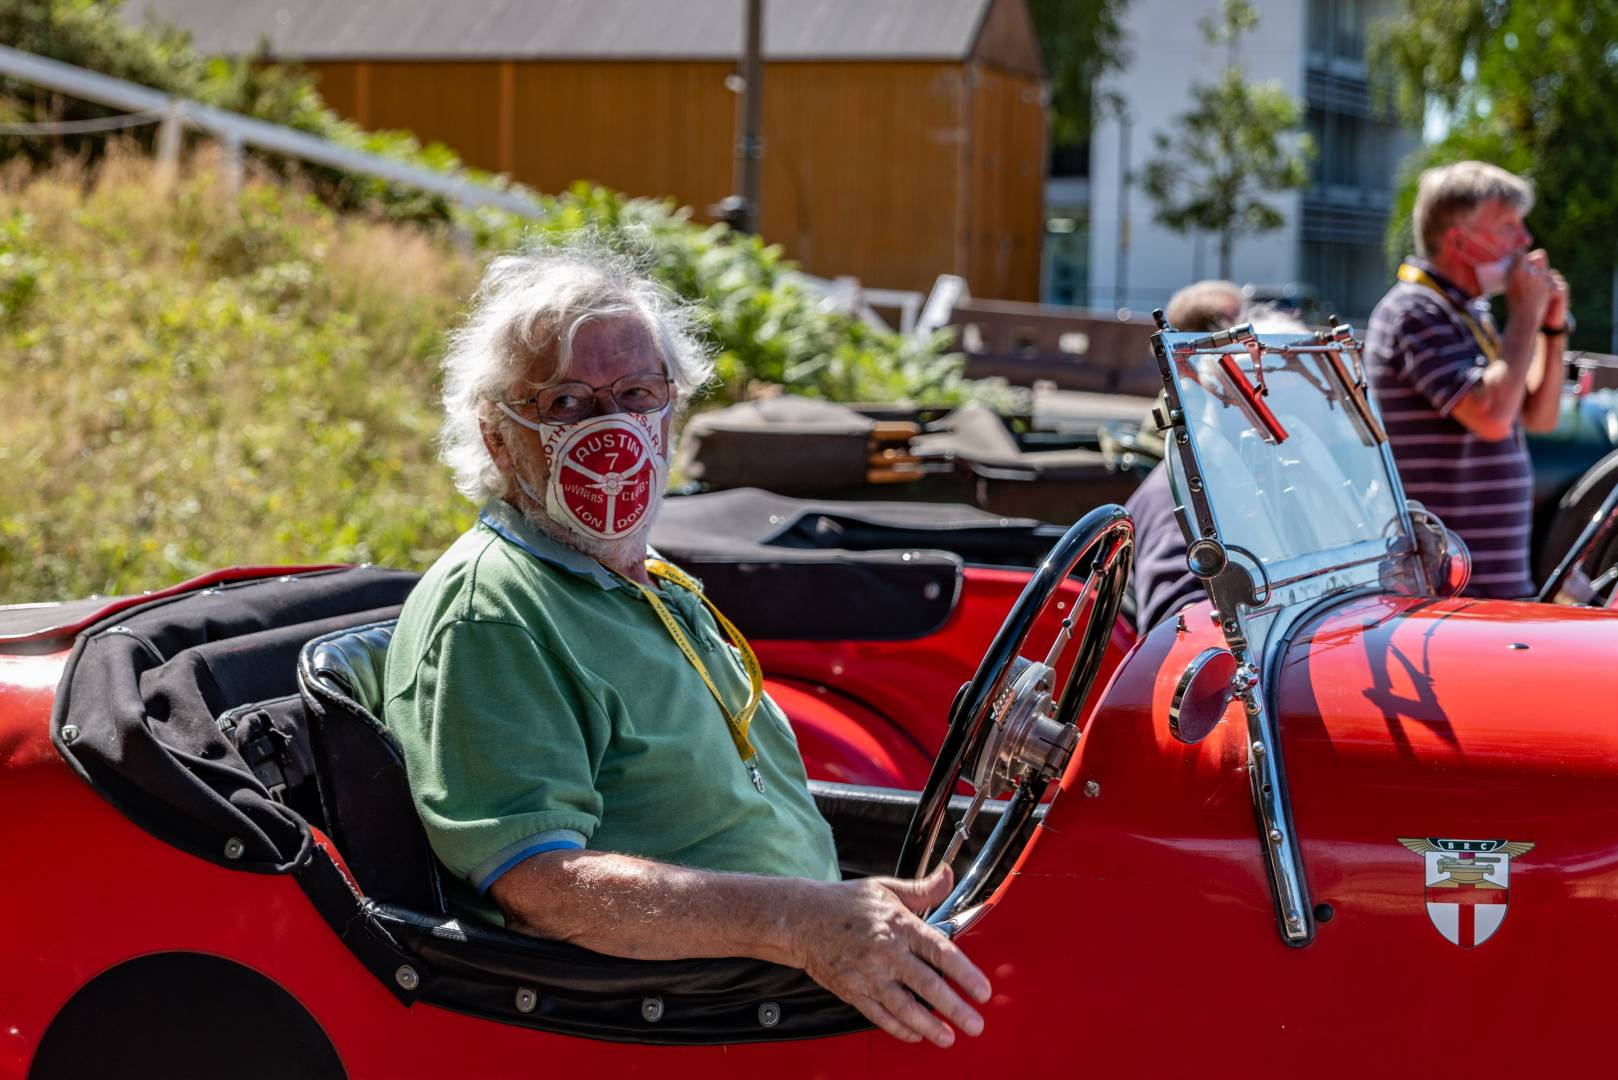 If you must wear a face mask, let it be an Austin 7 Club no-entry model